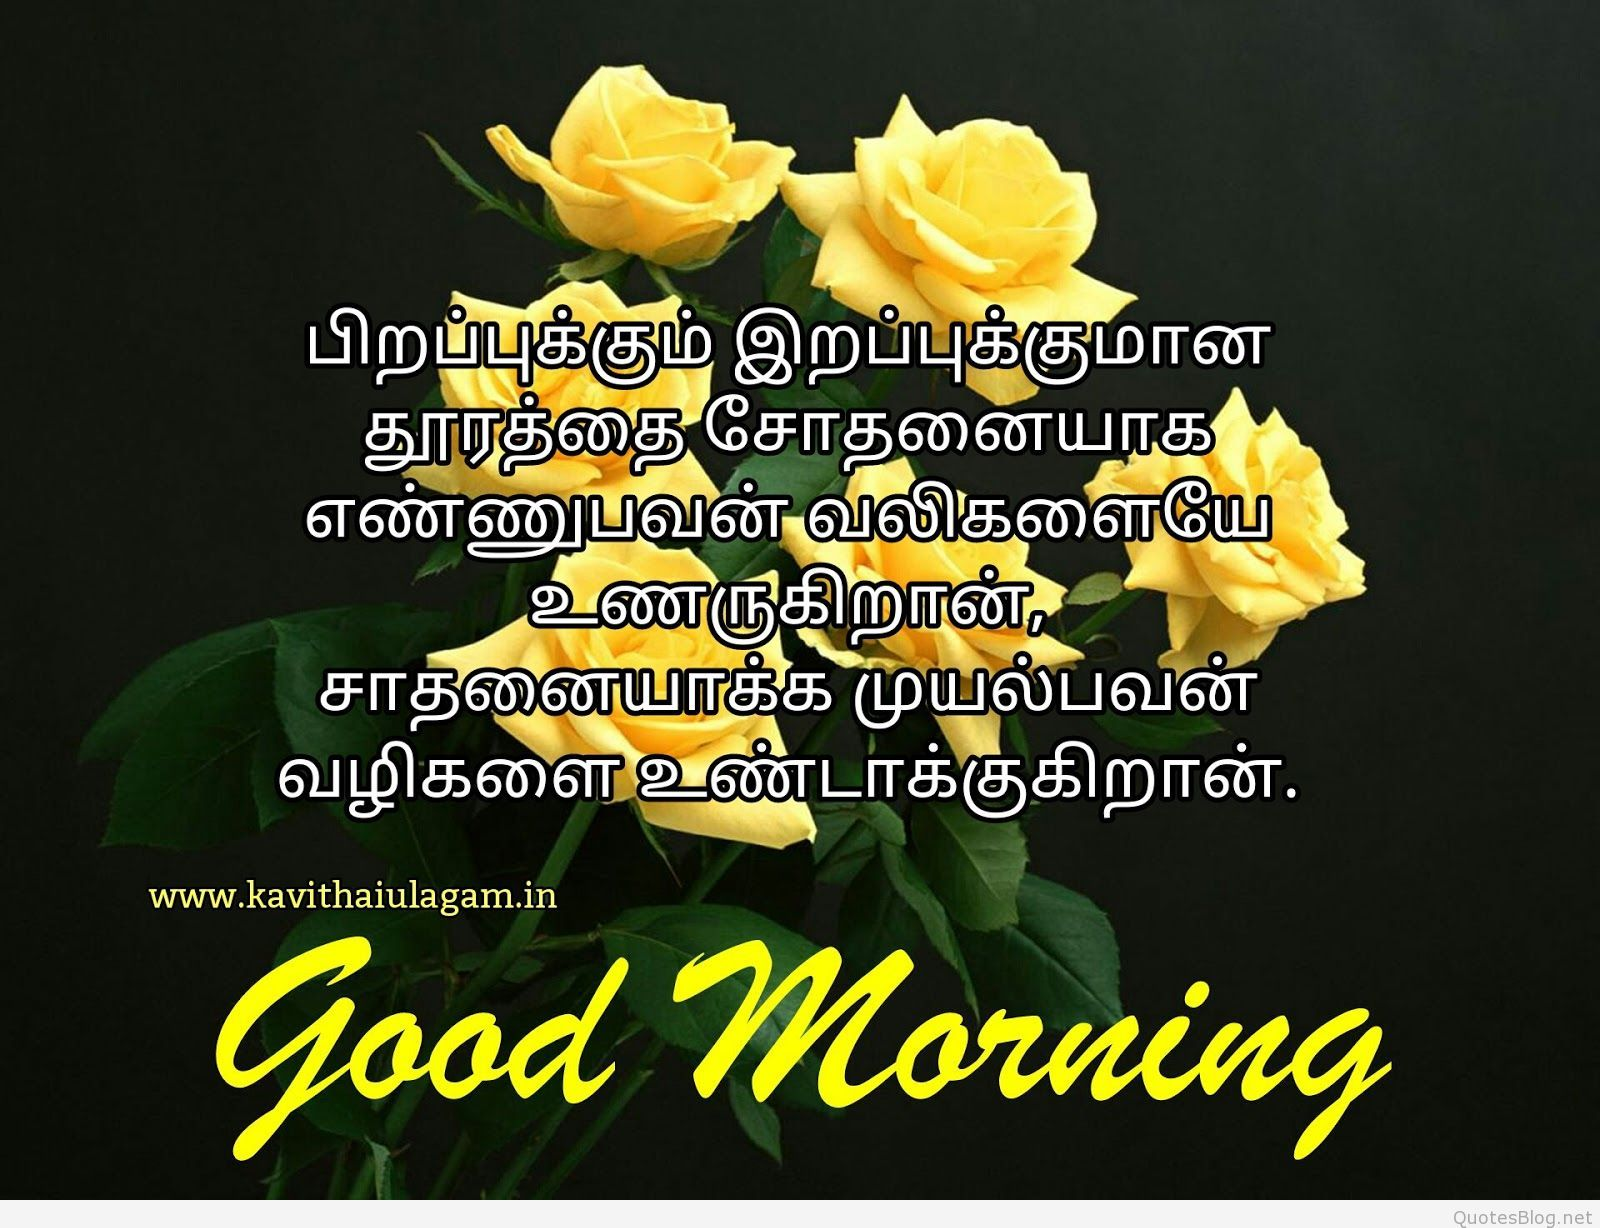 Tamil Morning Kavithai Images Wishes And Messages Good Morning Quotes Good Morning Qoute Good Morning Inspirational Quotes